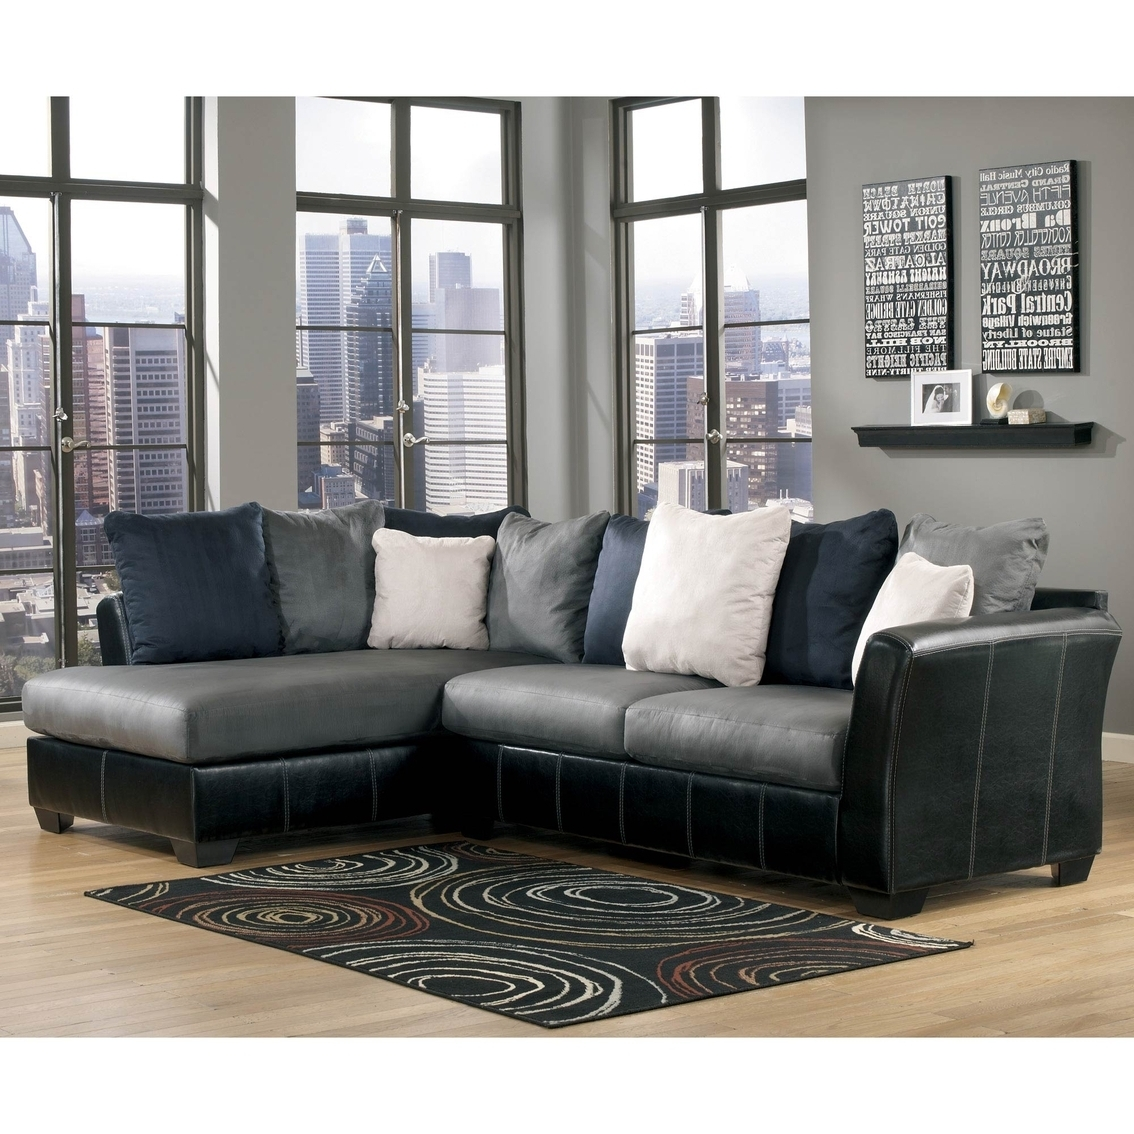 Ottawa Sectional Sofas Throughout Recent Ashley Sectional Sofa With Chaise – Hotelsbacau (View 4 of 20)